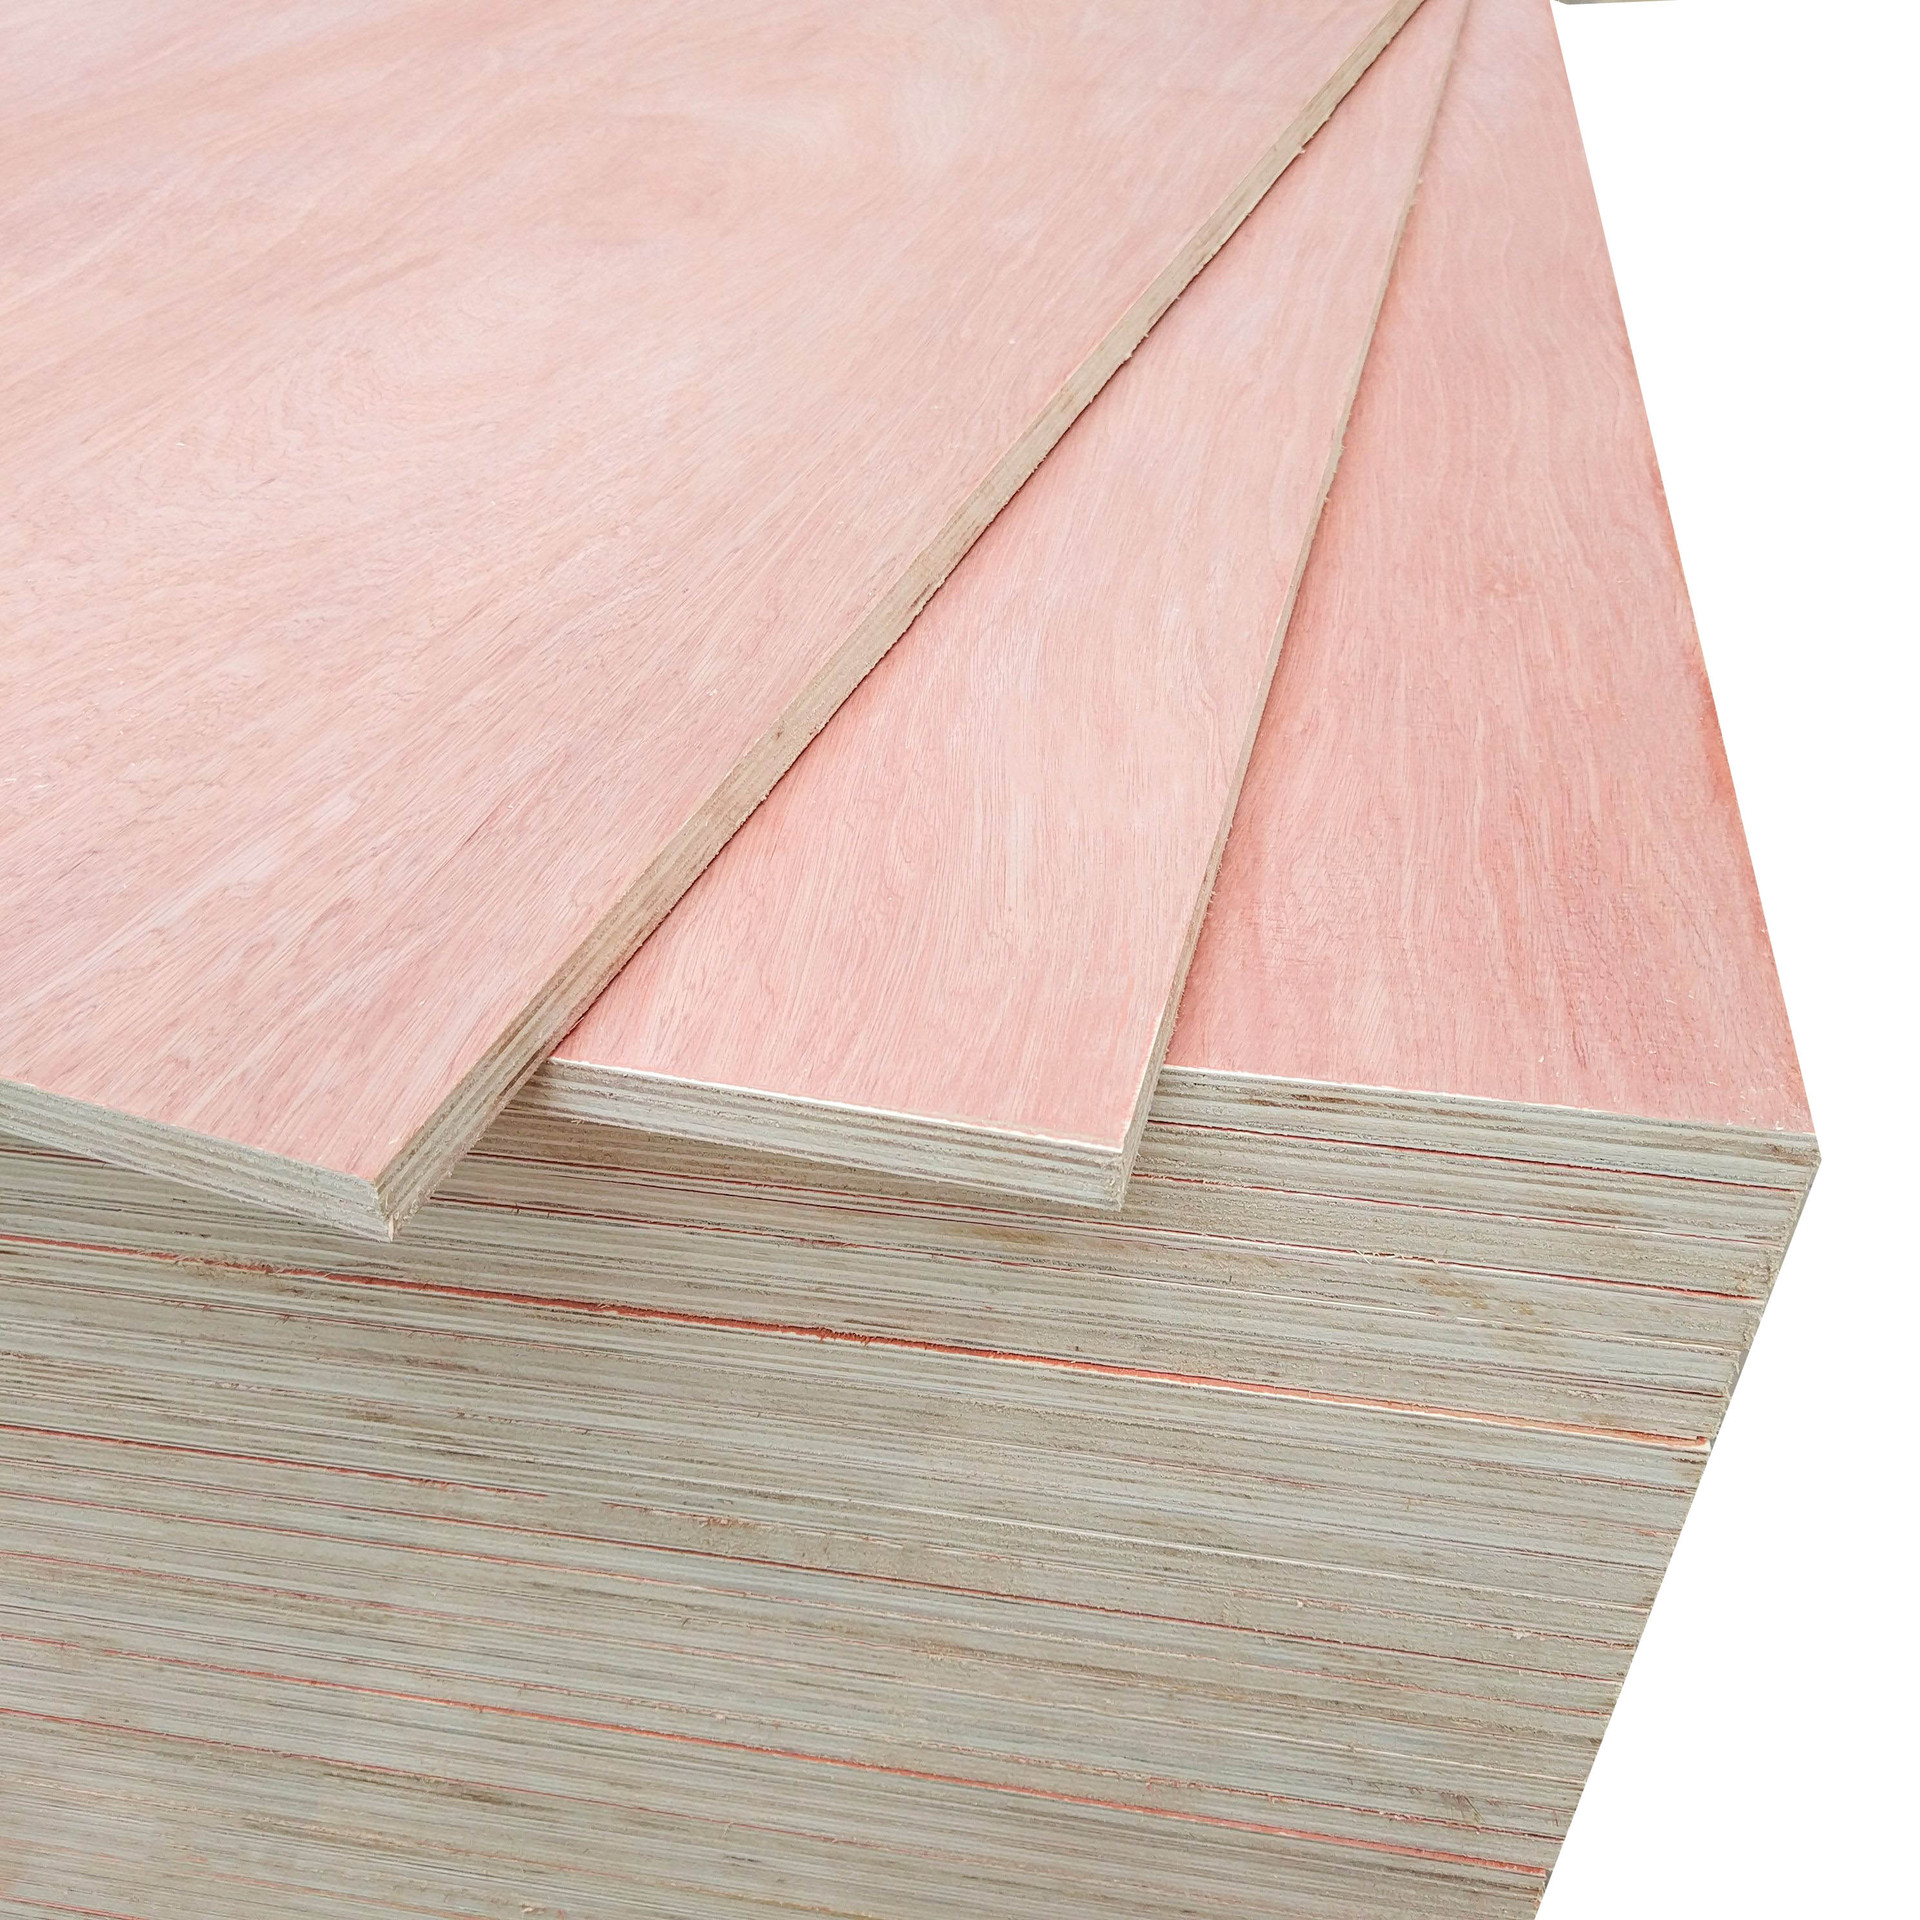 Packaging grade commercial plywood